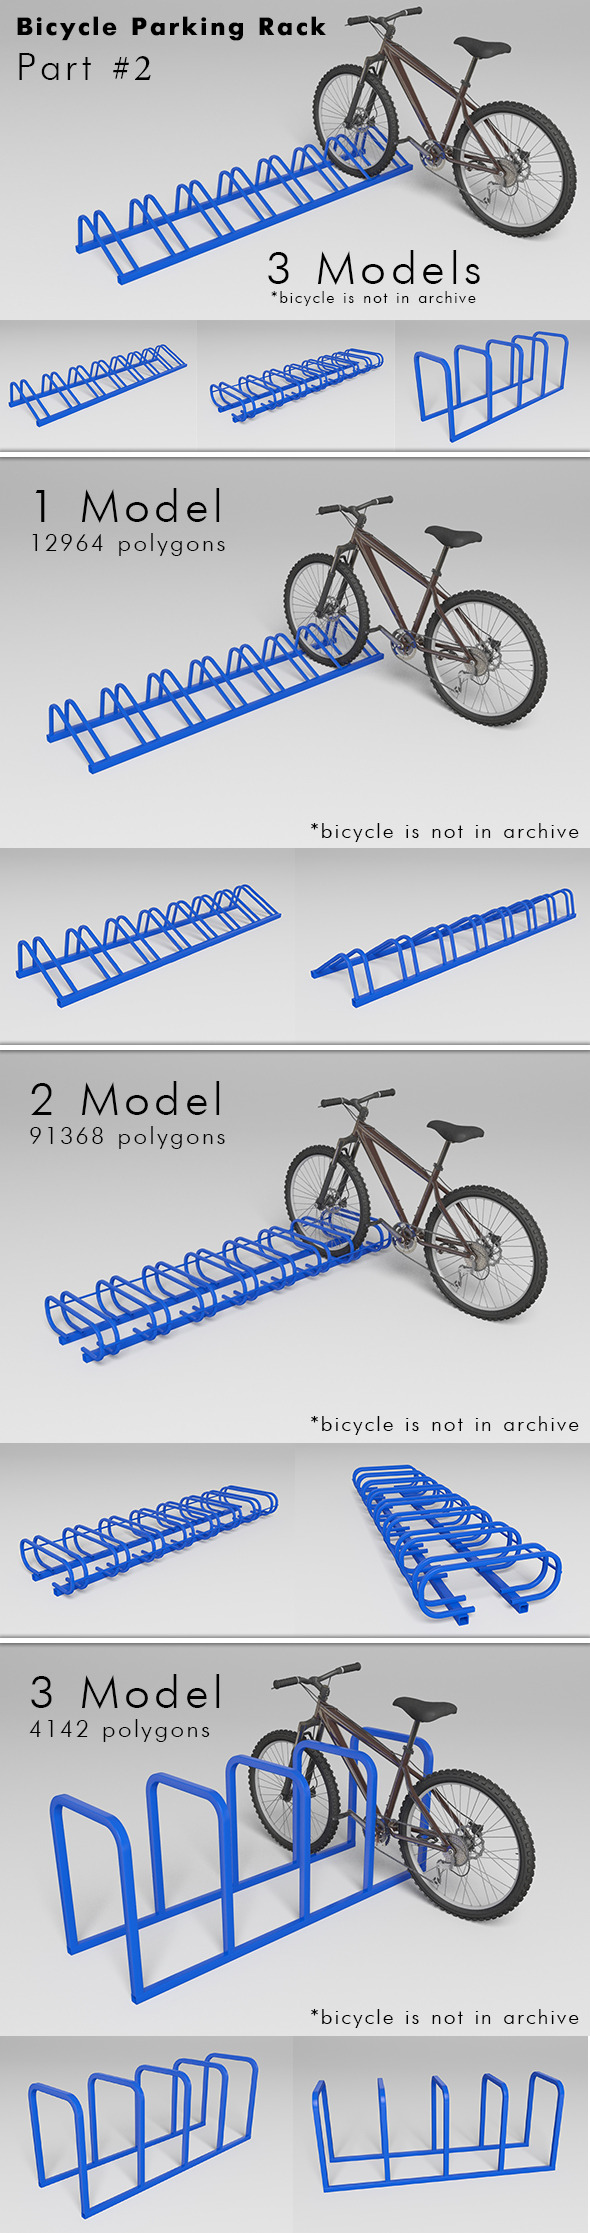 Bicycle Parking Rack - Part #2 - 3DOcean Item for Sale